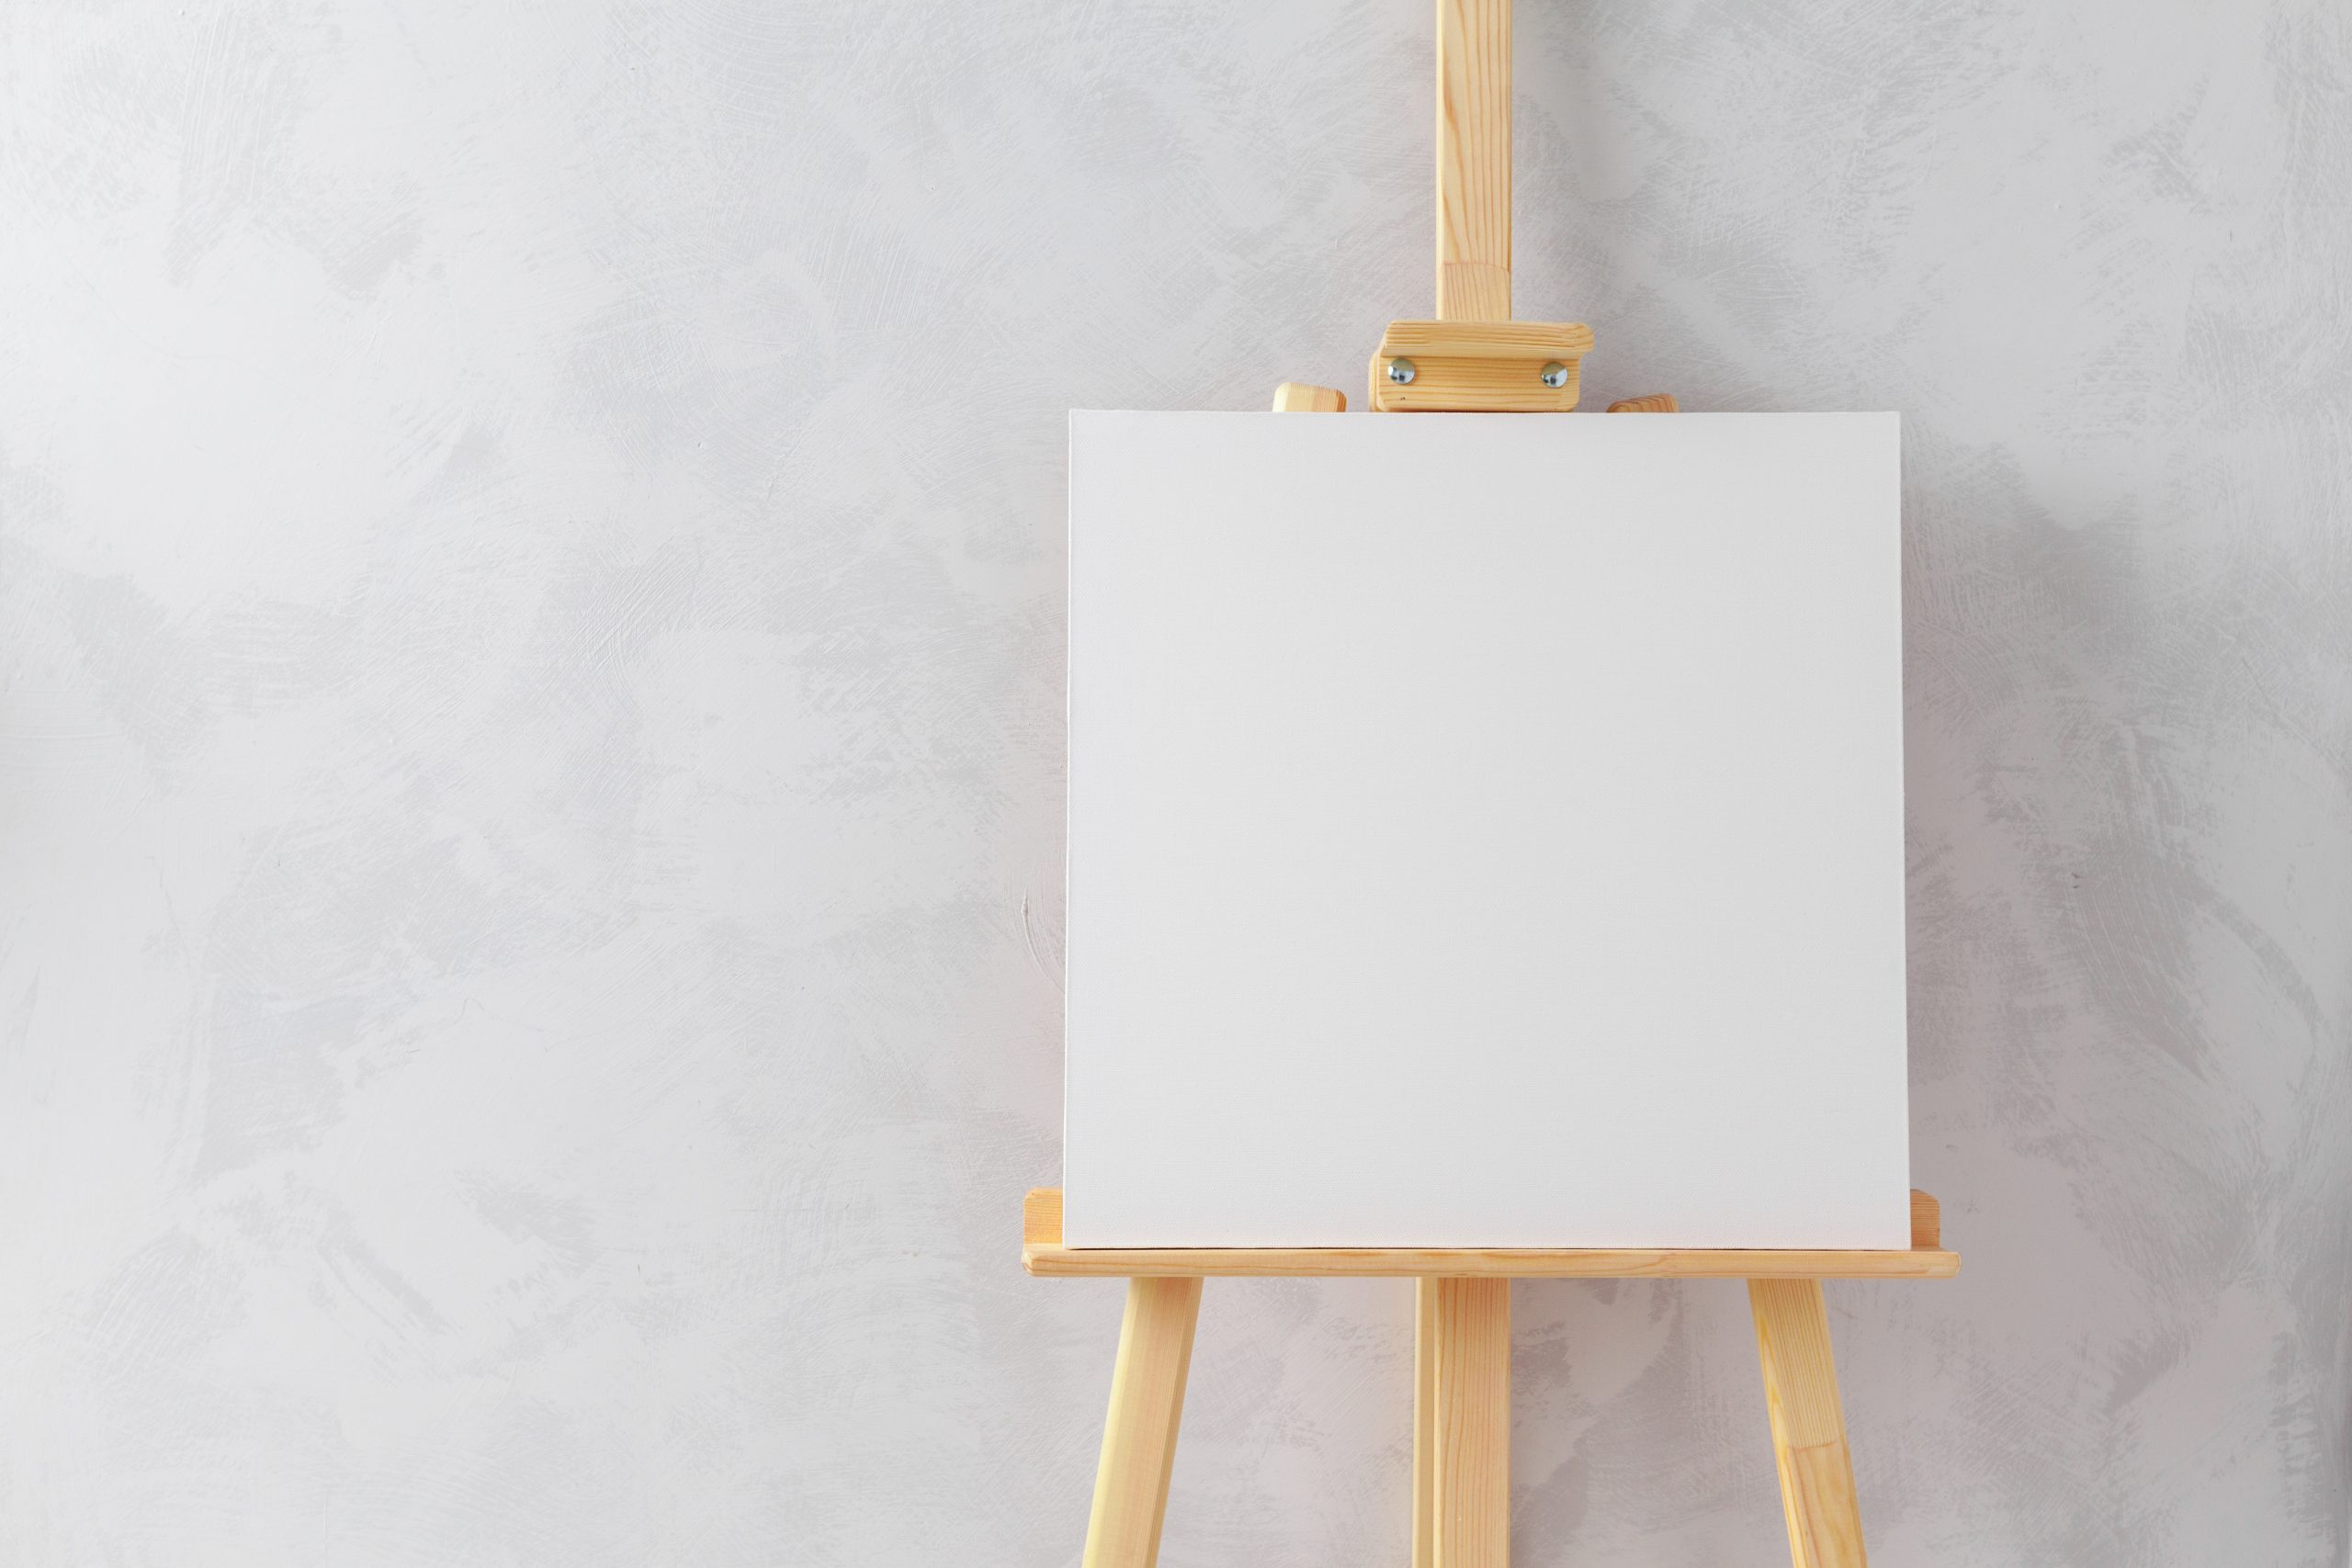 How to Set Up a Wooden Art Easel